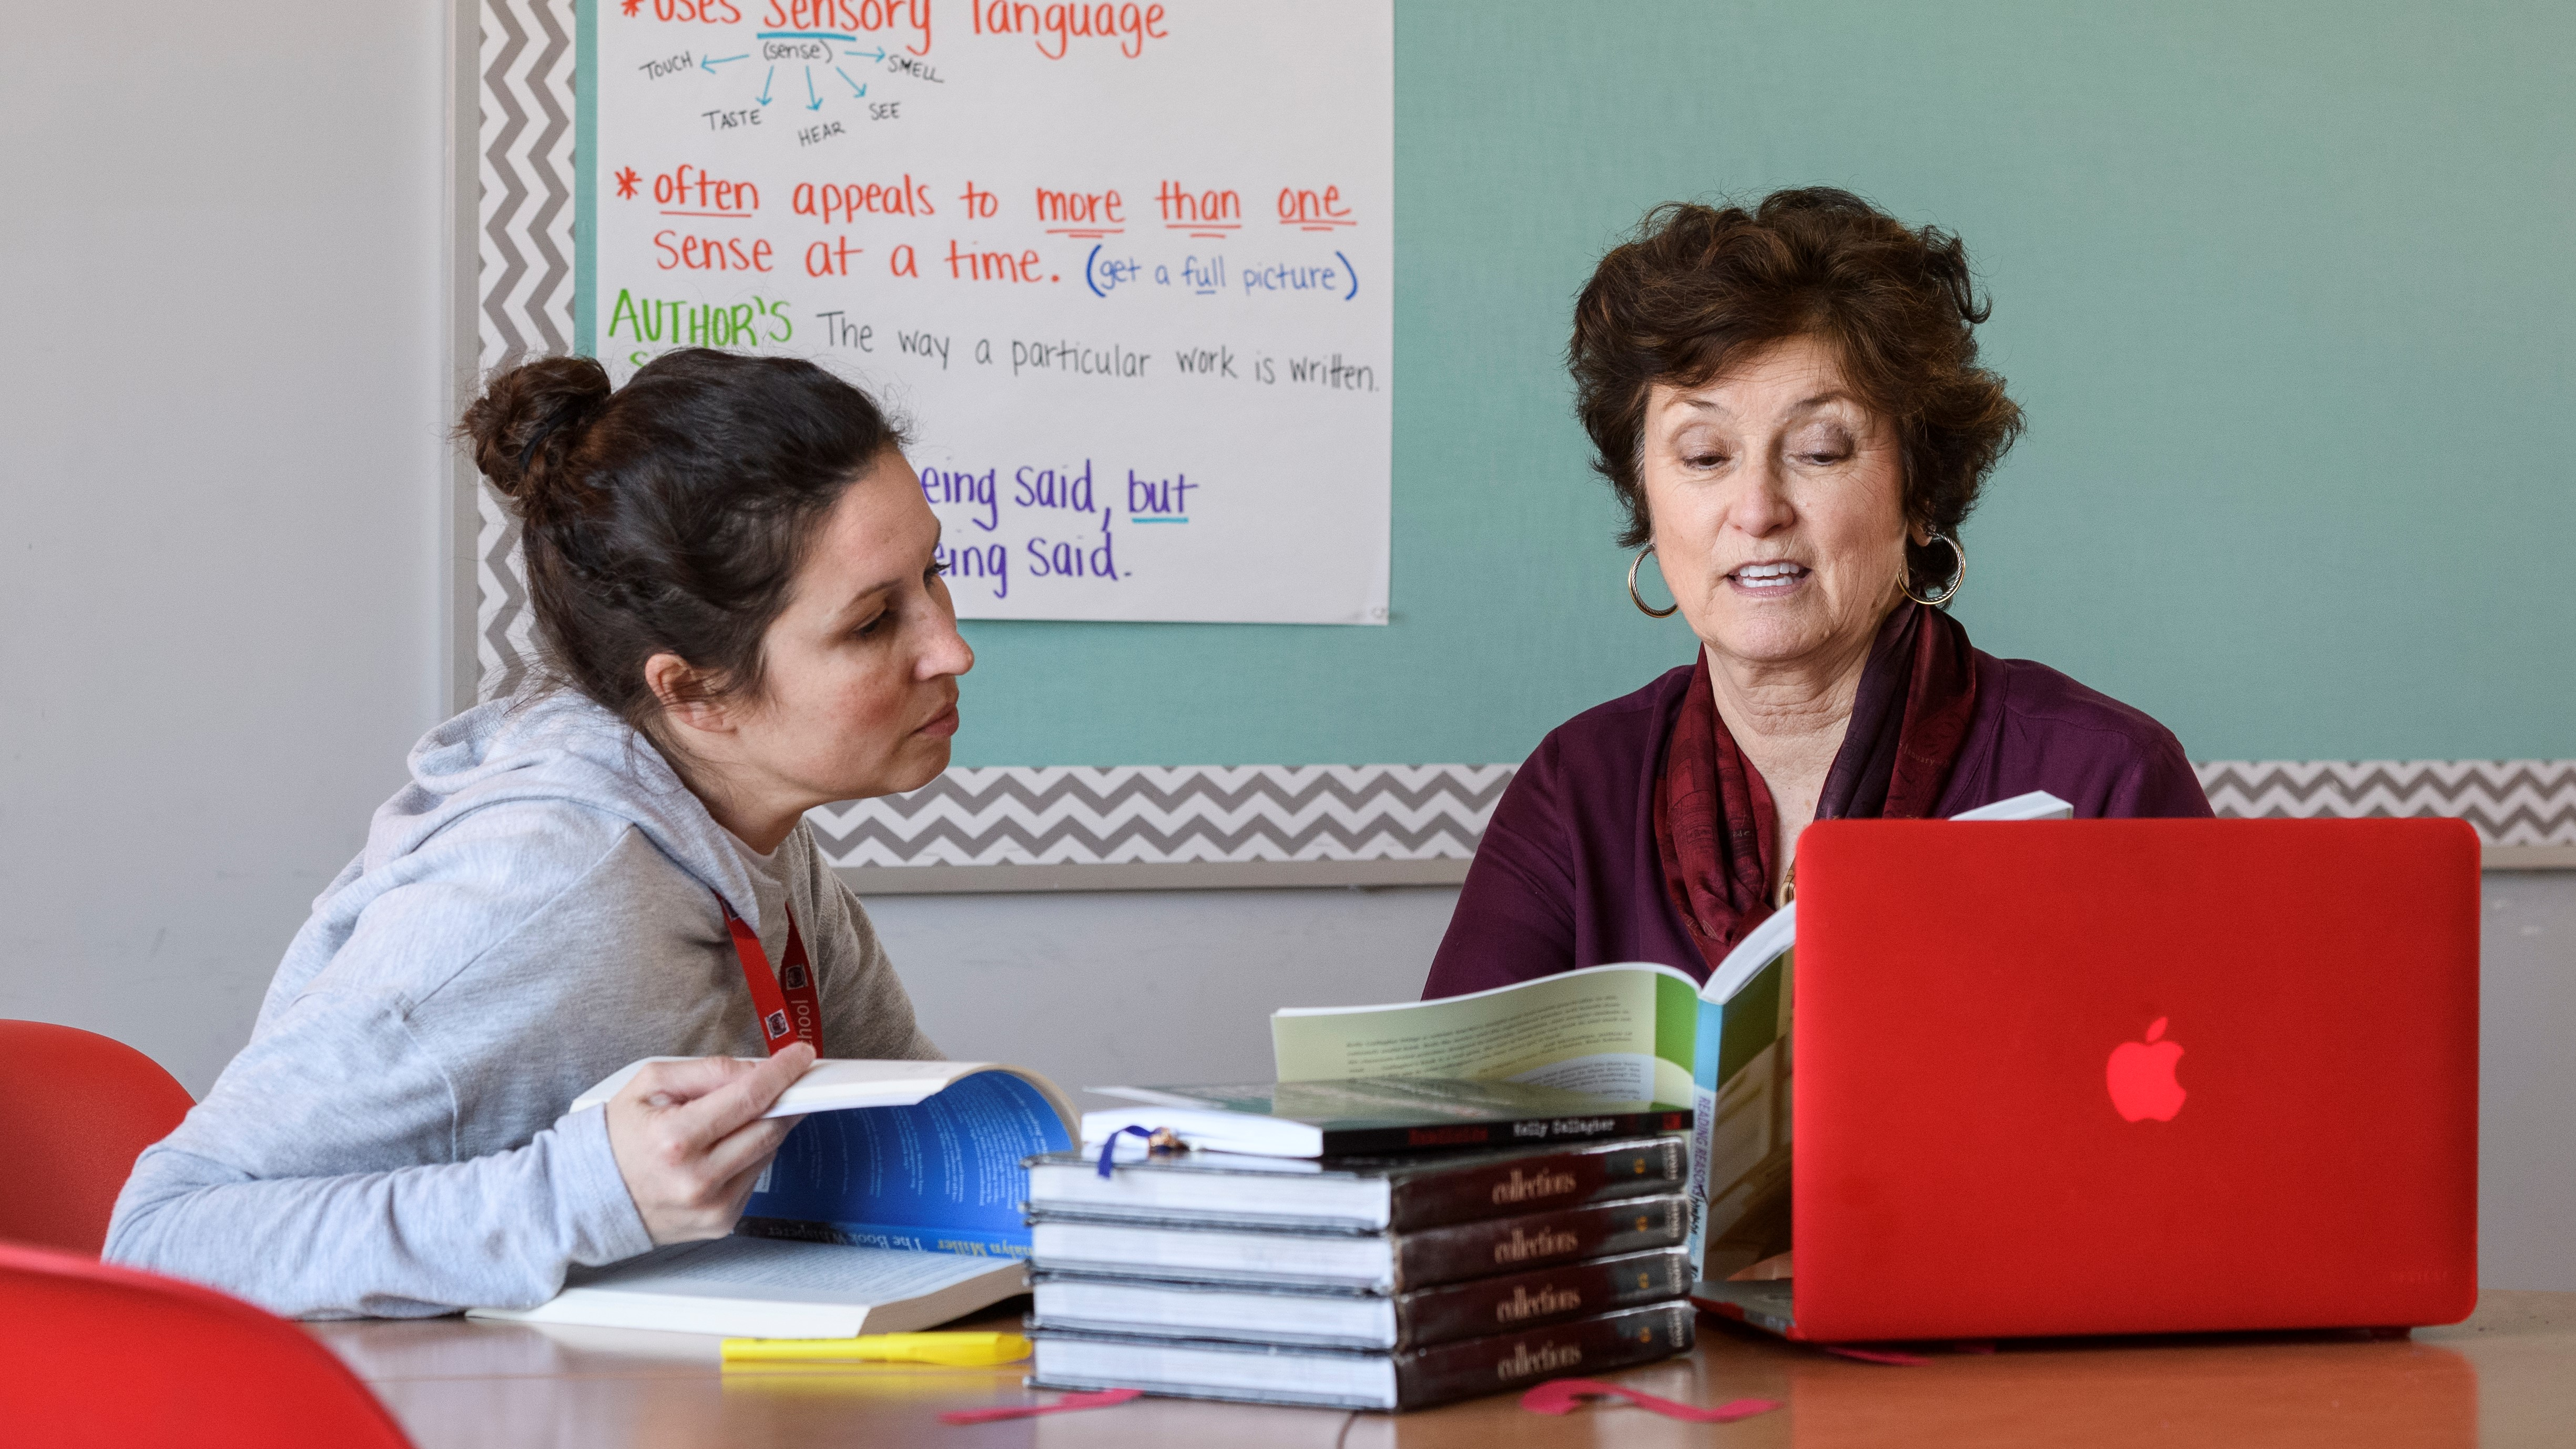 A teacher works with a member of UD's Professional Development Center for Educators at a table in her classroom.